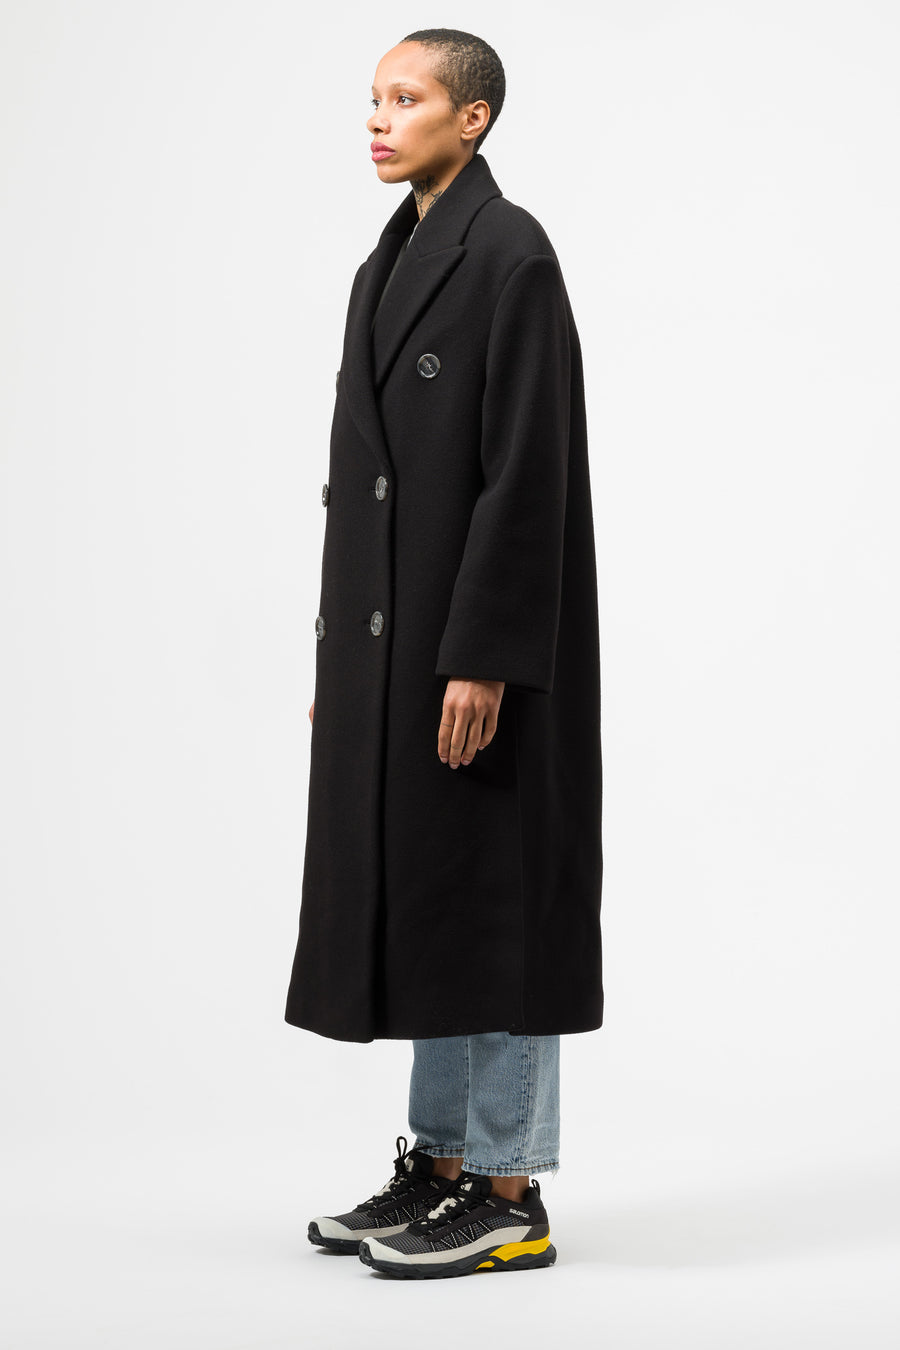 Acne Studios Octania Wool Coat in Black - Notre